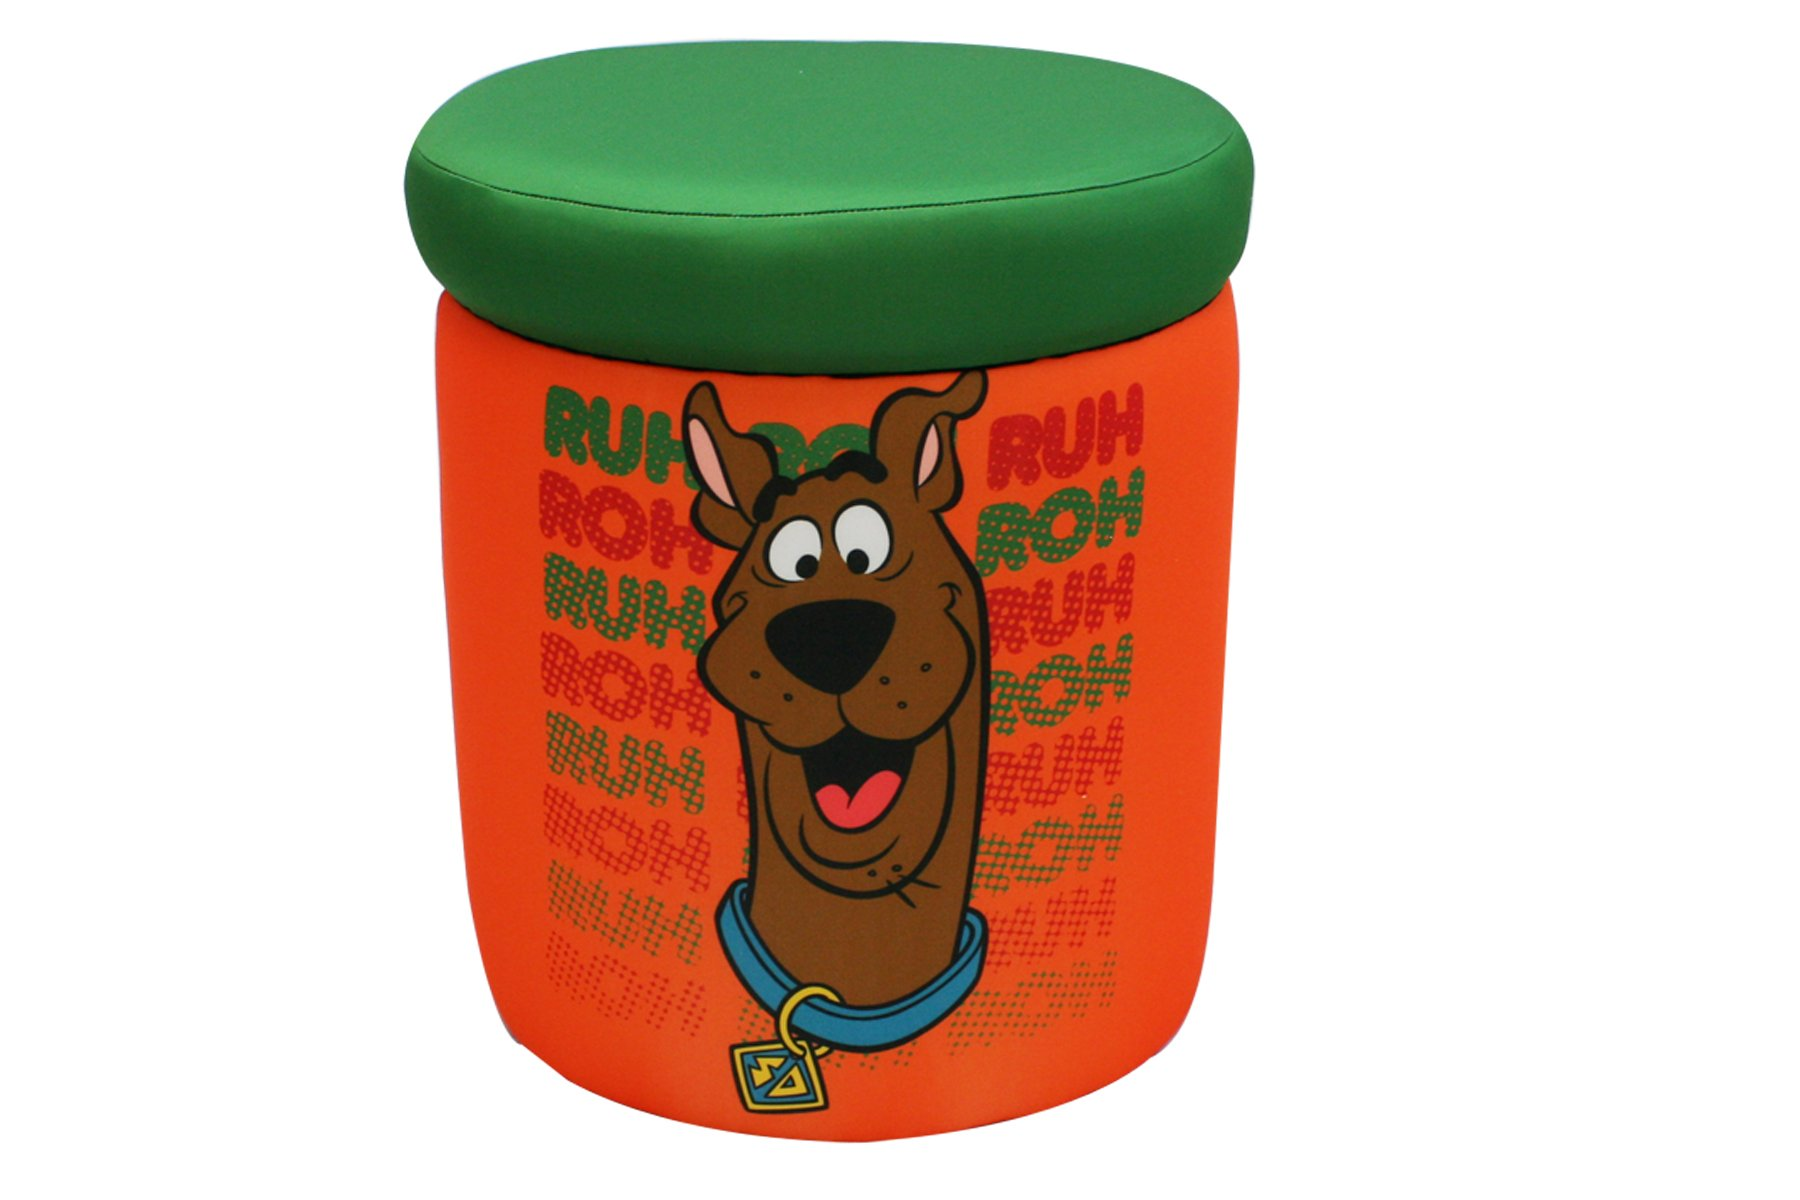 Fun Scooby Doo Bedroom Furniture and Decor for Kids!